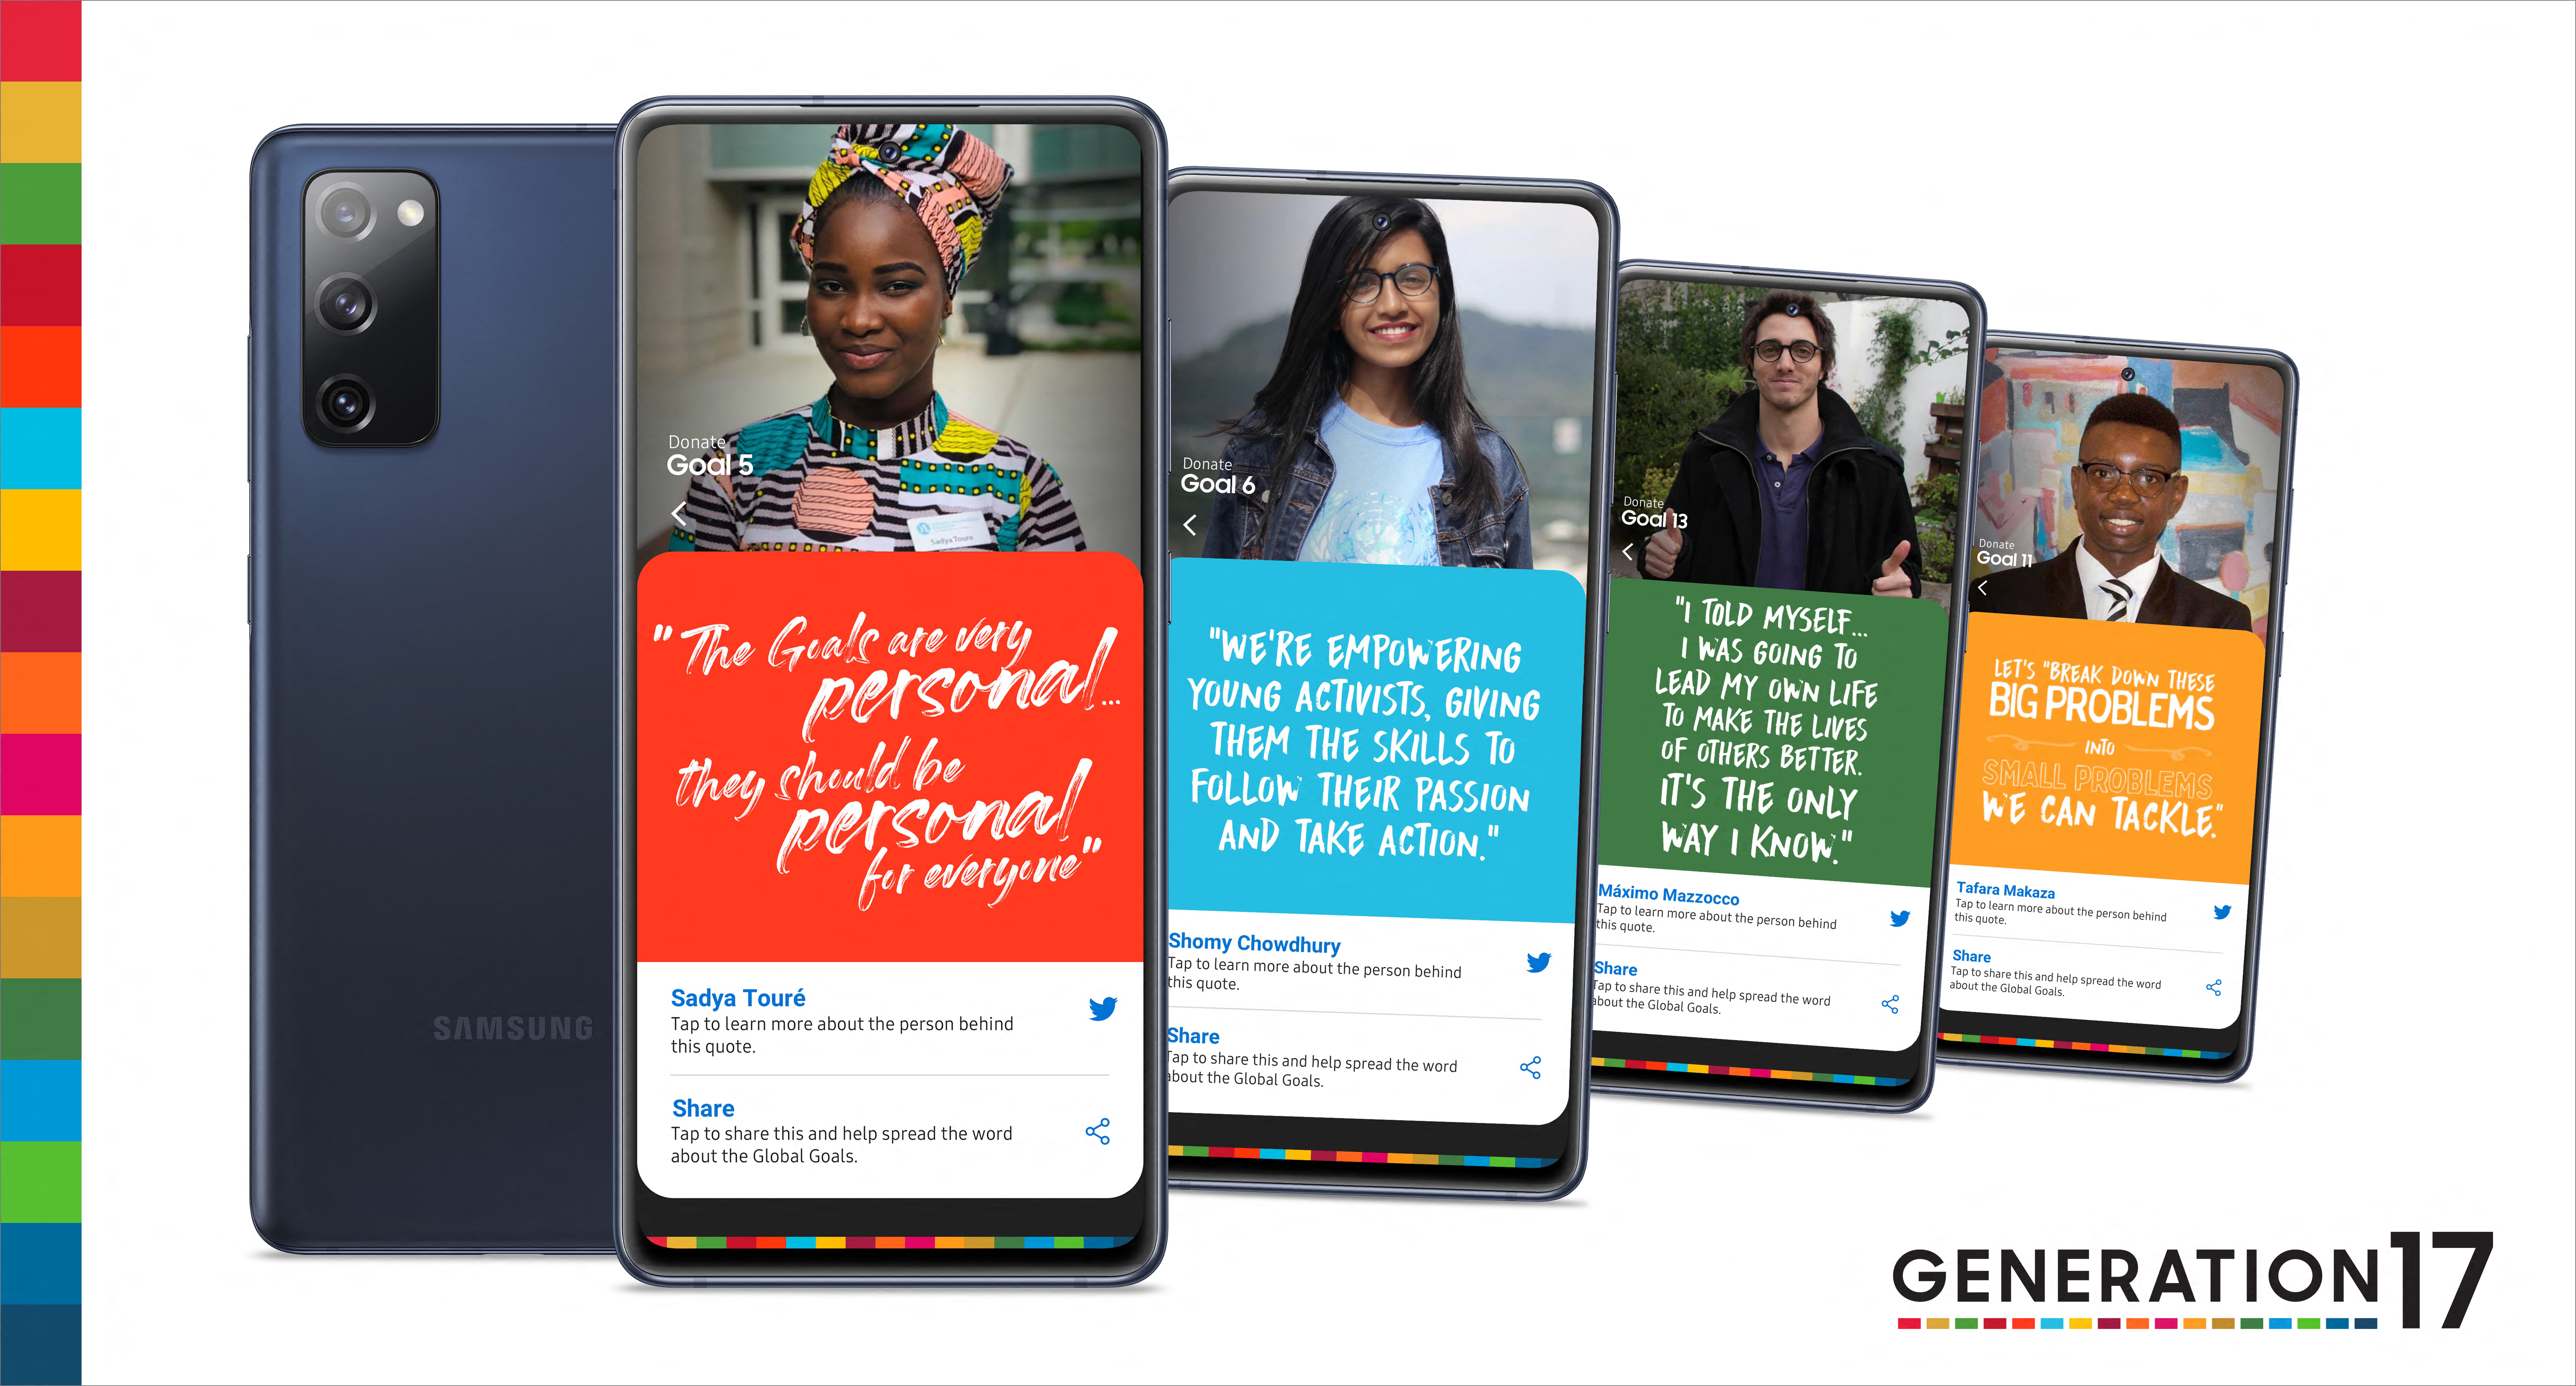 Samsung and the United Nations Development Programme Partner With Youth Accelerate Progress for the Global Goals